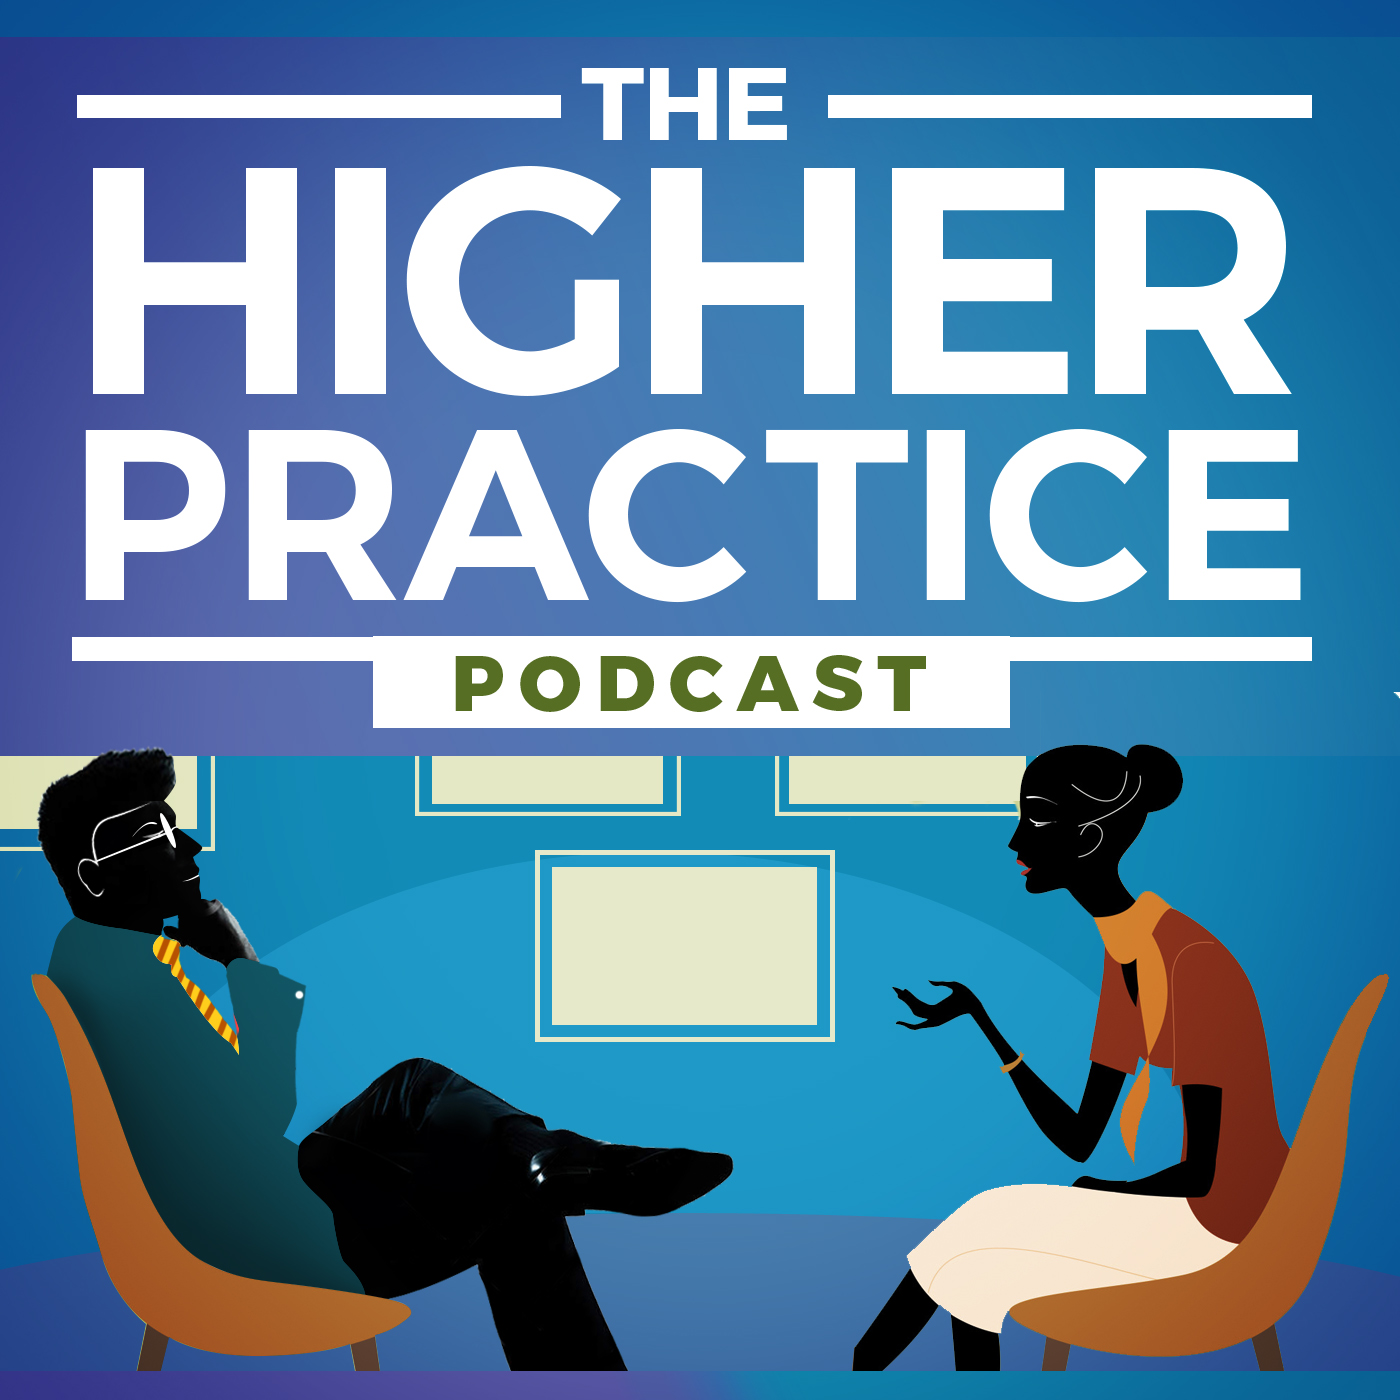 The Higher Practice Podcast for Optimal Mental Health - The Existential Threat of COVID and What to Do About It - Dr. Joan Borysenko - HPP 53